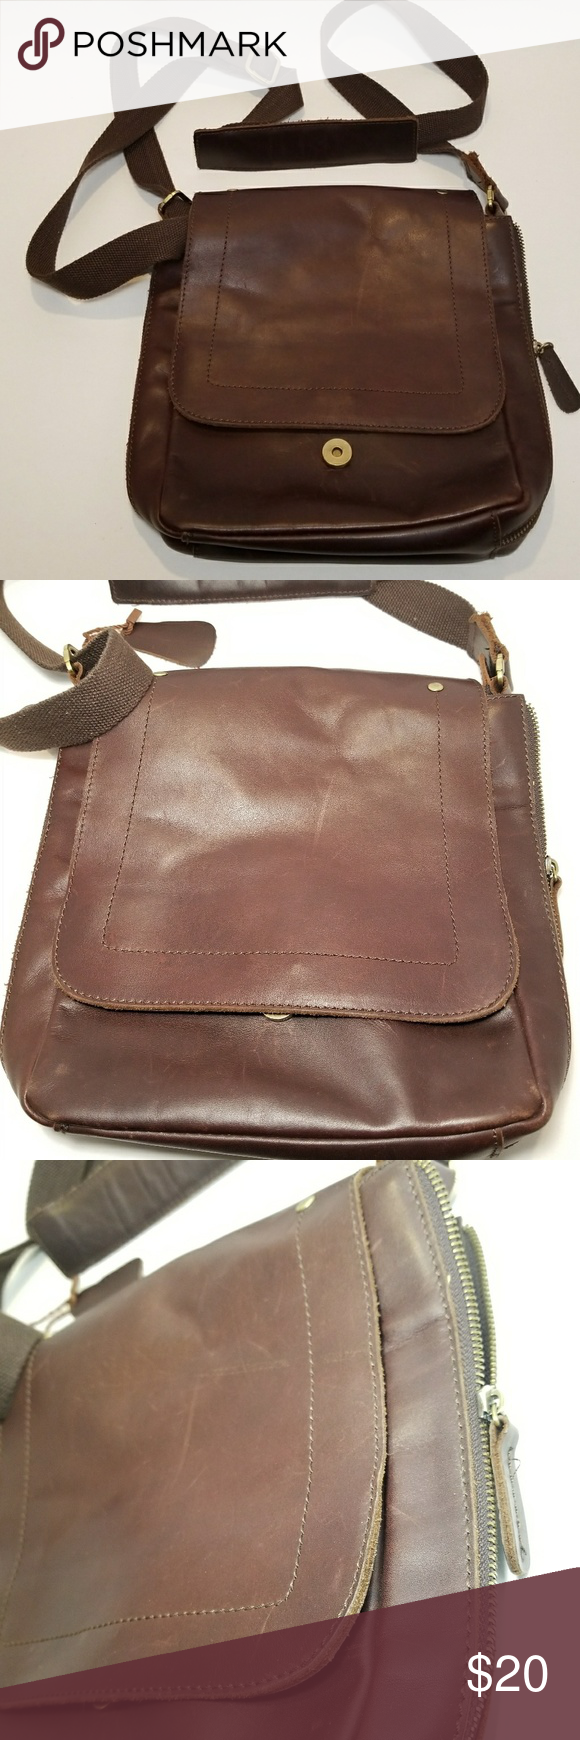 Genuine Leather Crossbody bag This is a nice leather CROSSBODY BAG to carry  your essentials. Has open lining compartment with zip up pocket. b7786f9812